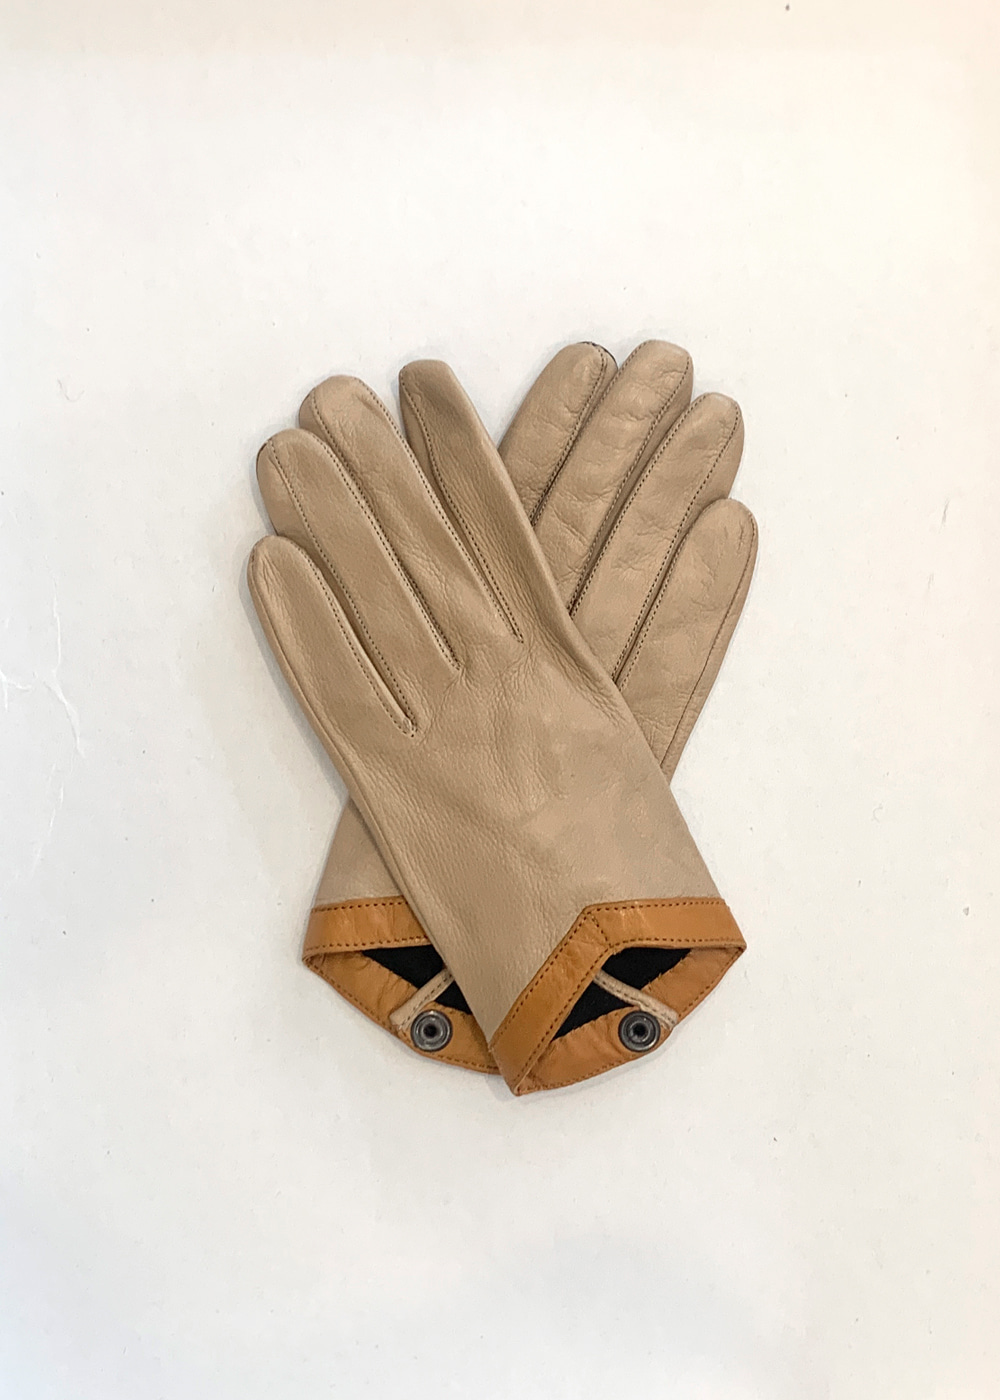 LAMBSKIN LEATHER GLOVES - nude & colonial